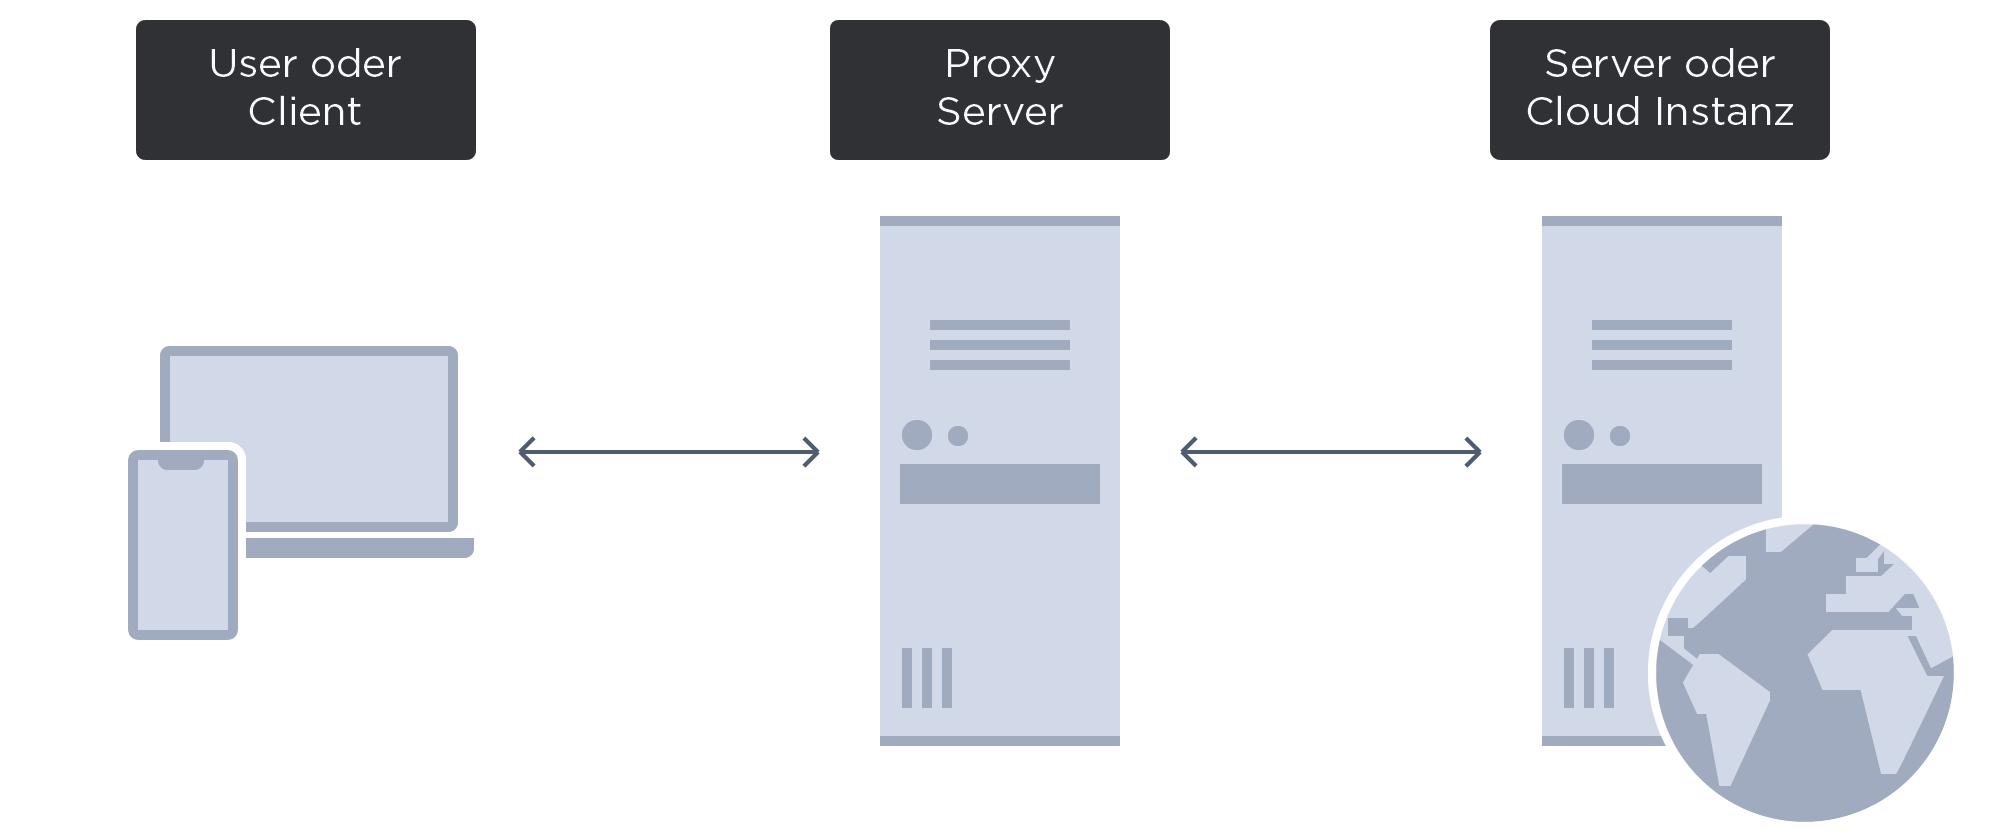 Kommunikation mit Proxy-Server